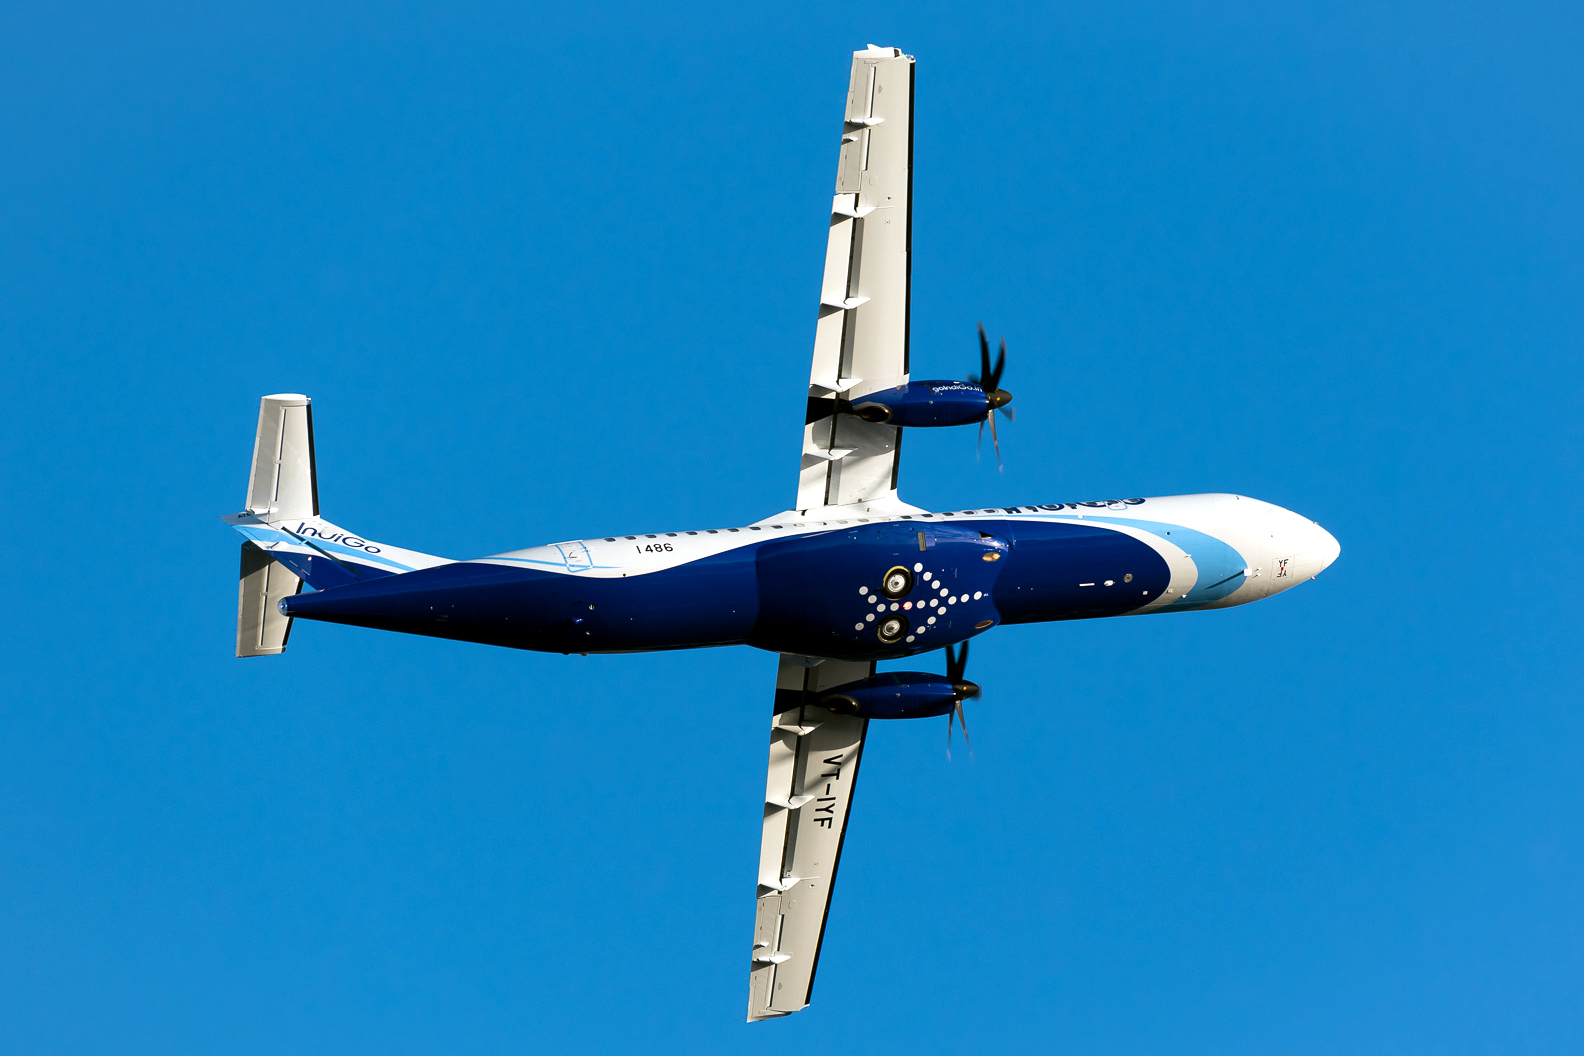 IndiGo ATR 72-600 View From Beneath, Extreme Rolling